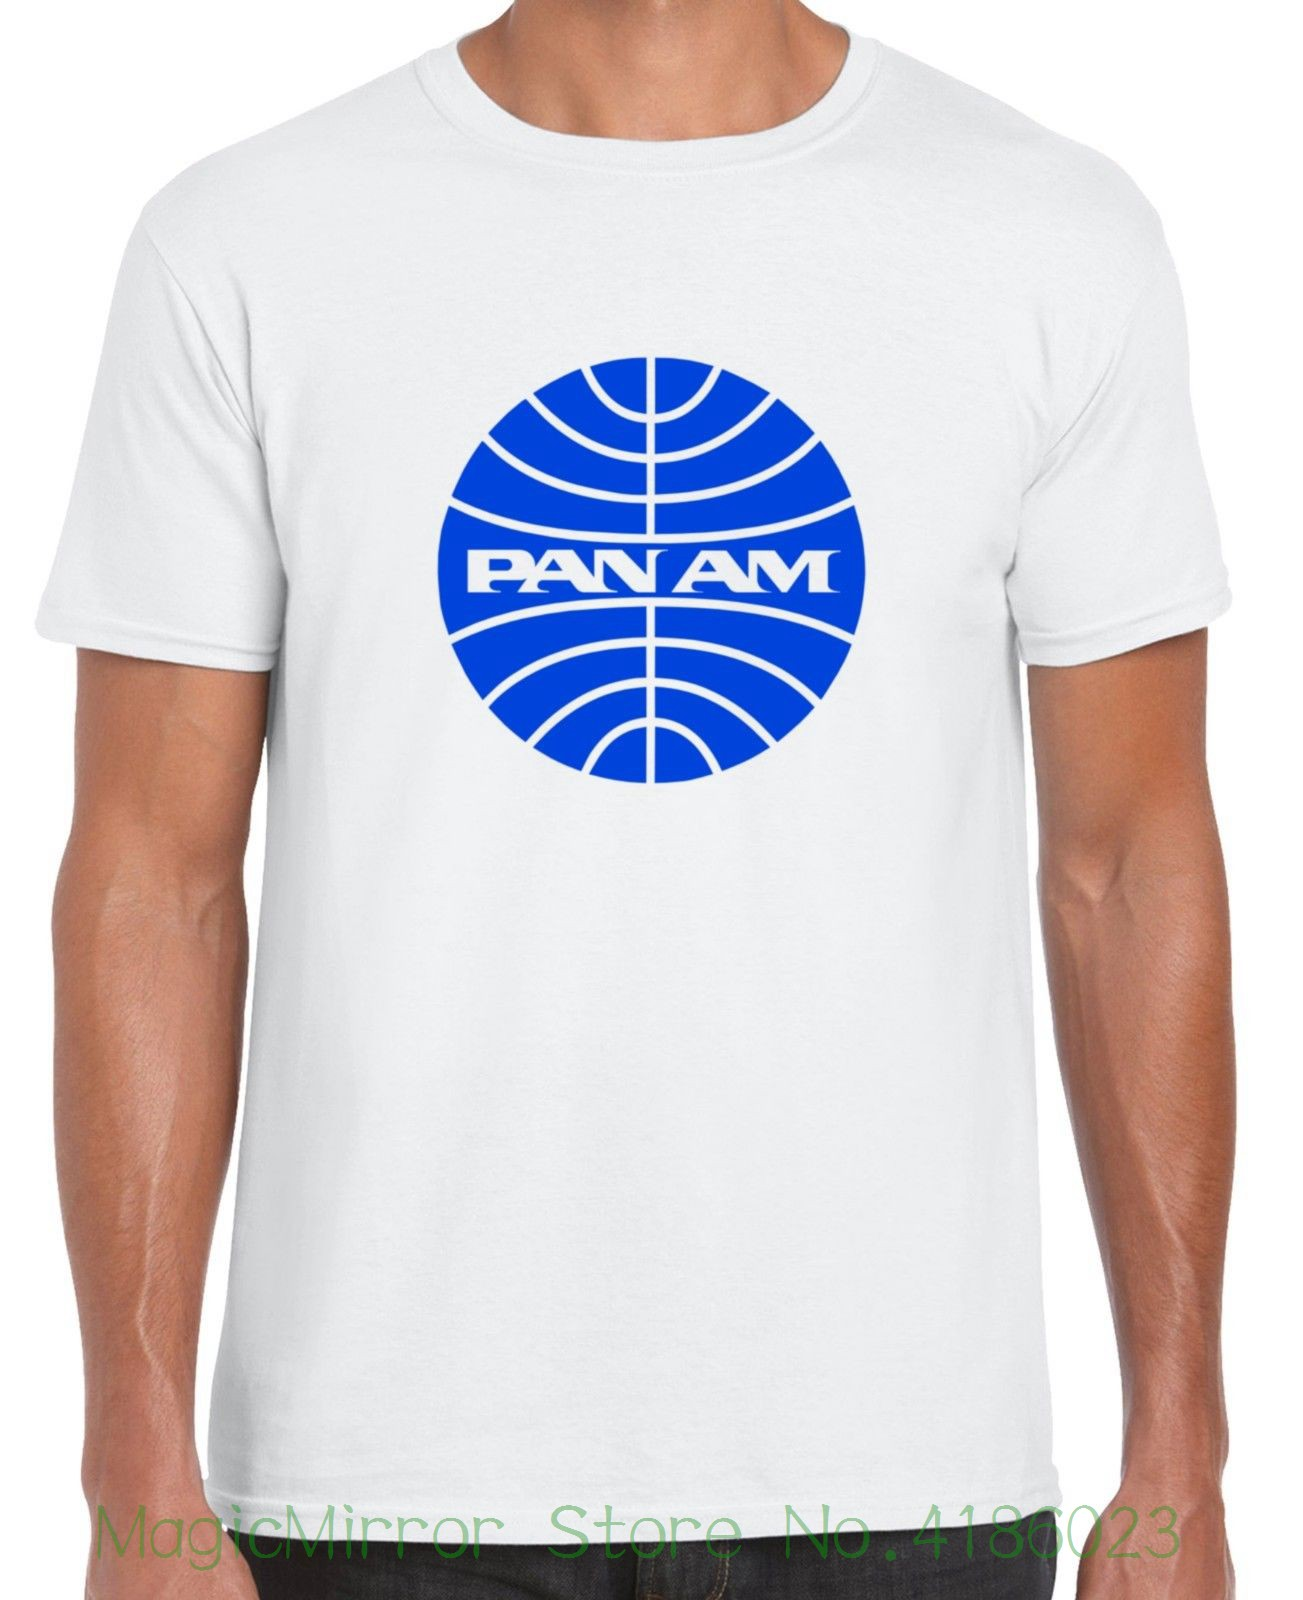 Pan Am T-shirt ( Branded American Airlines Bankrupt Company ) Pre-cotton Tee Shirt For Men